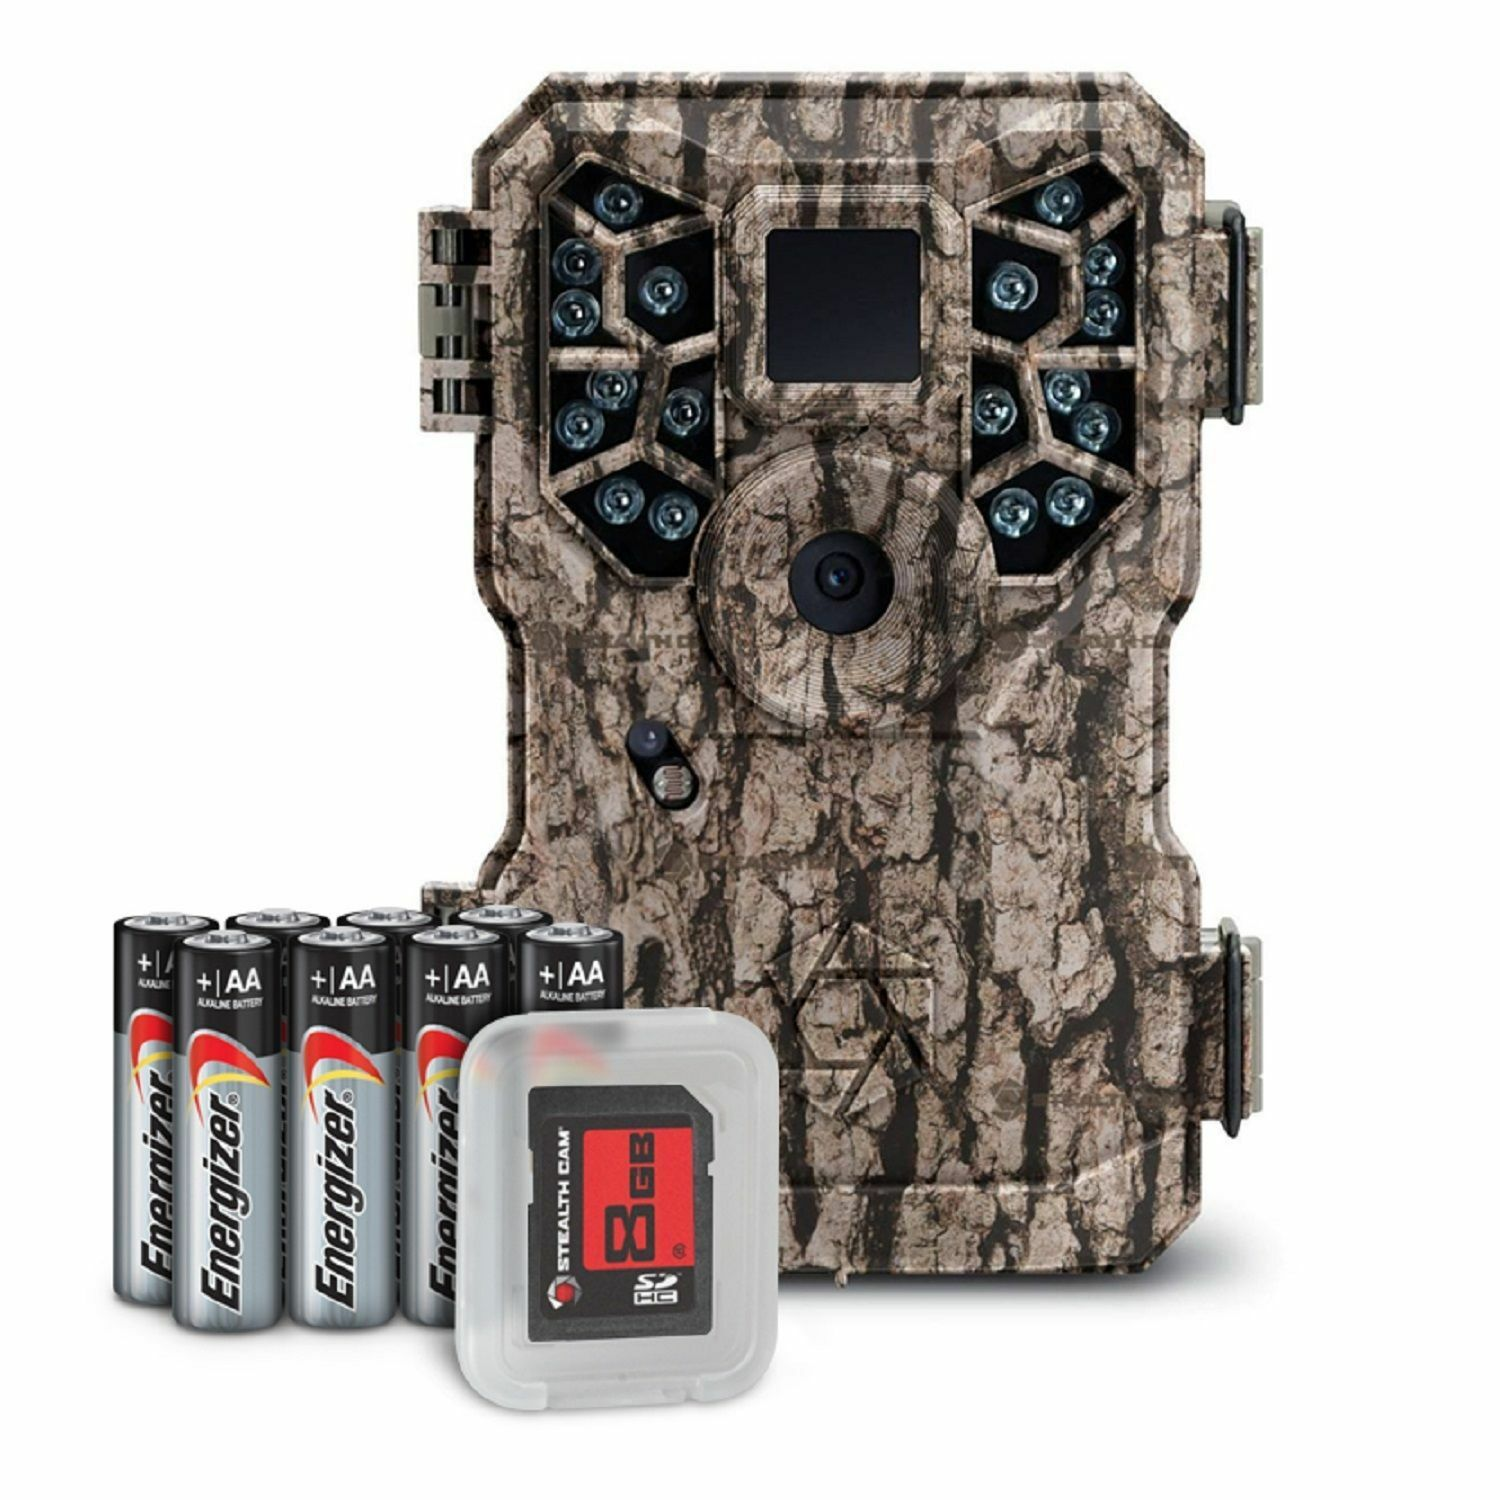 GSM Stealth Cam PX Series  Trail Game Camera 8MP STC-PX18CMO  the latest models